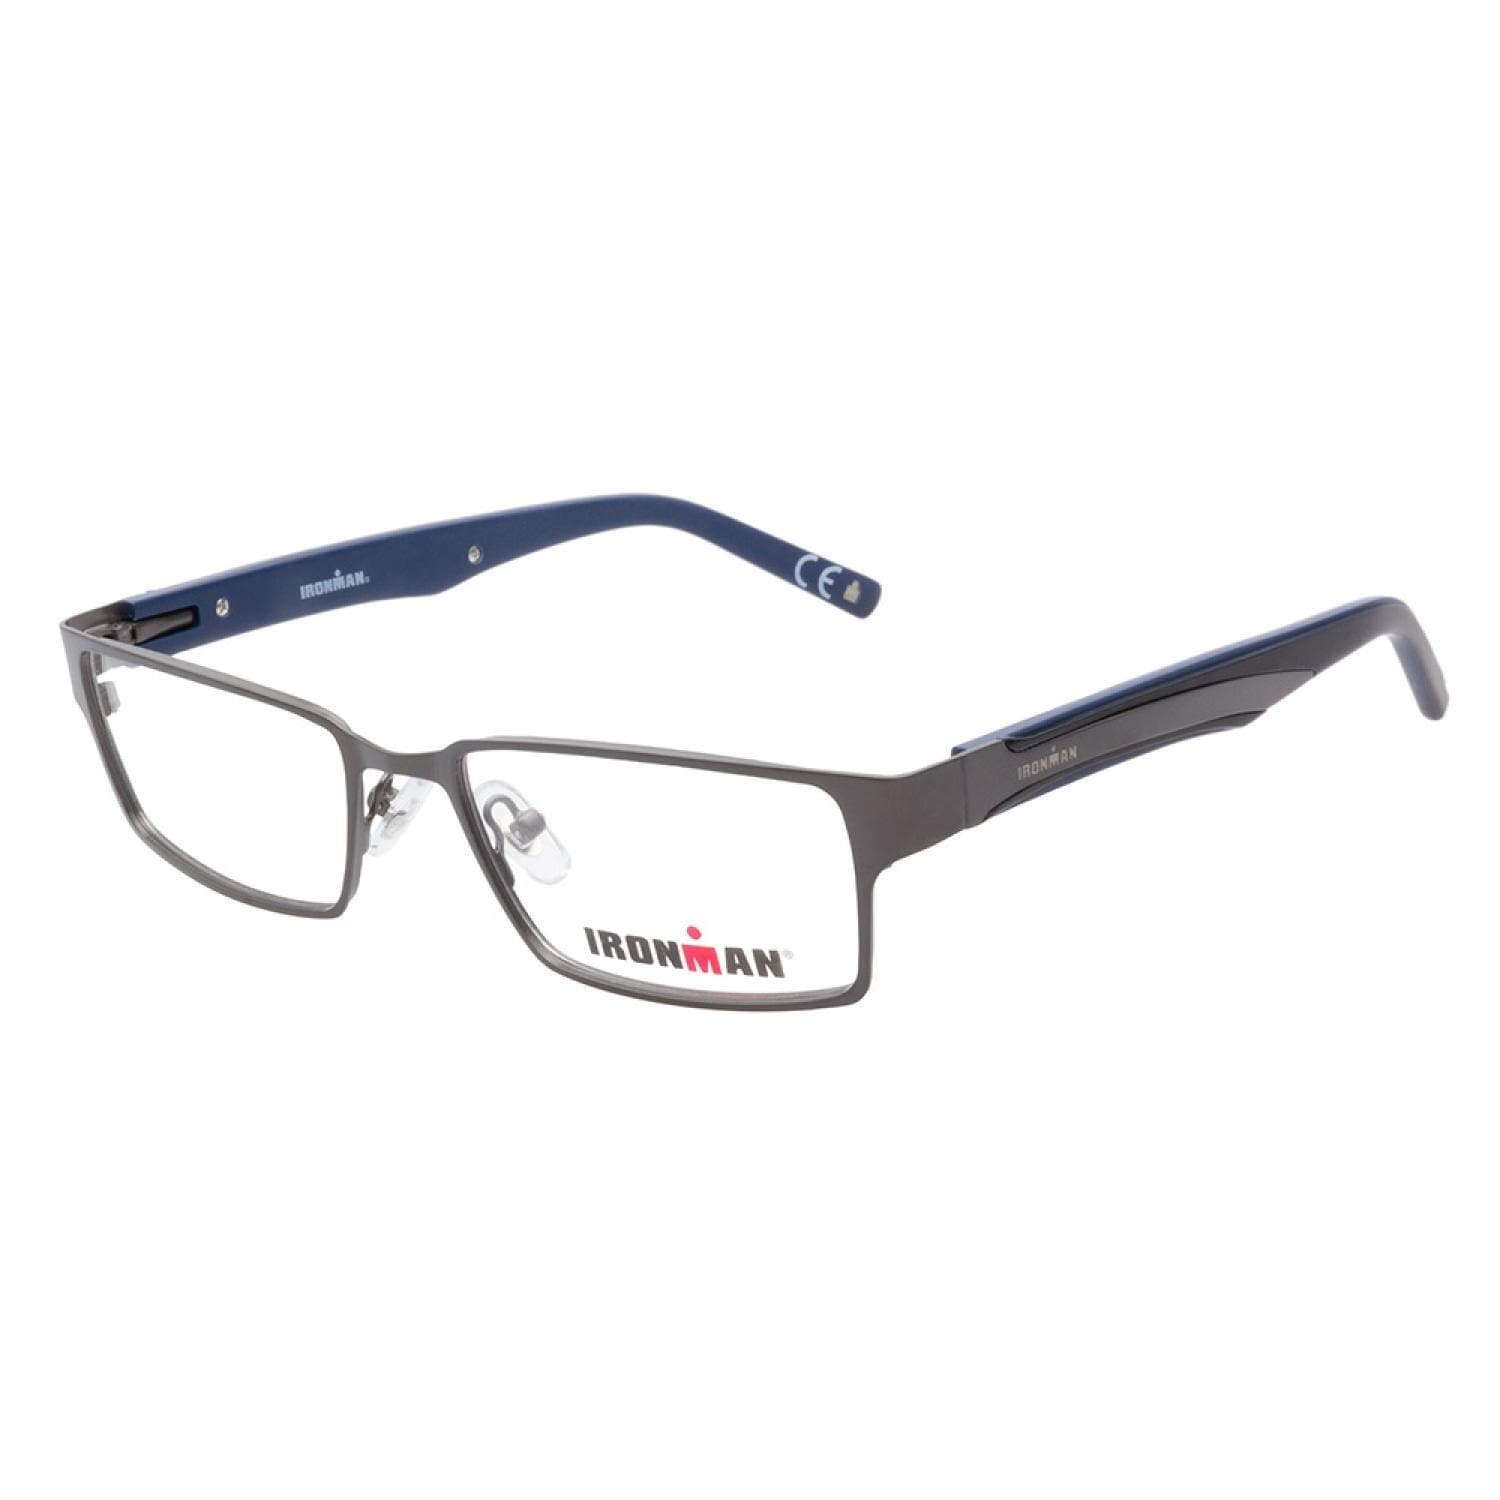 4f98e418f6 Shop Ironman 104 Gunmetal Prescription Eyeglasses - Free Shipping ...